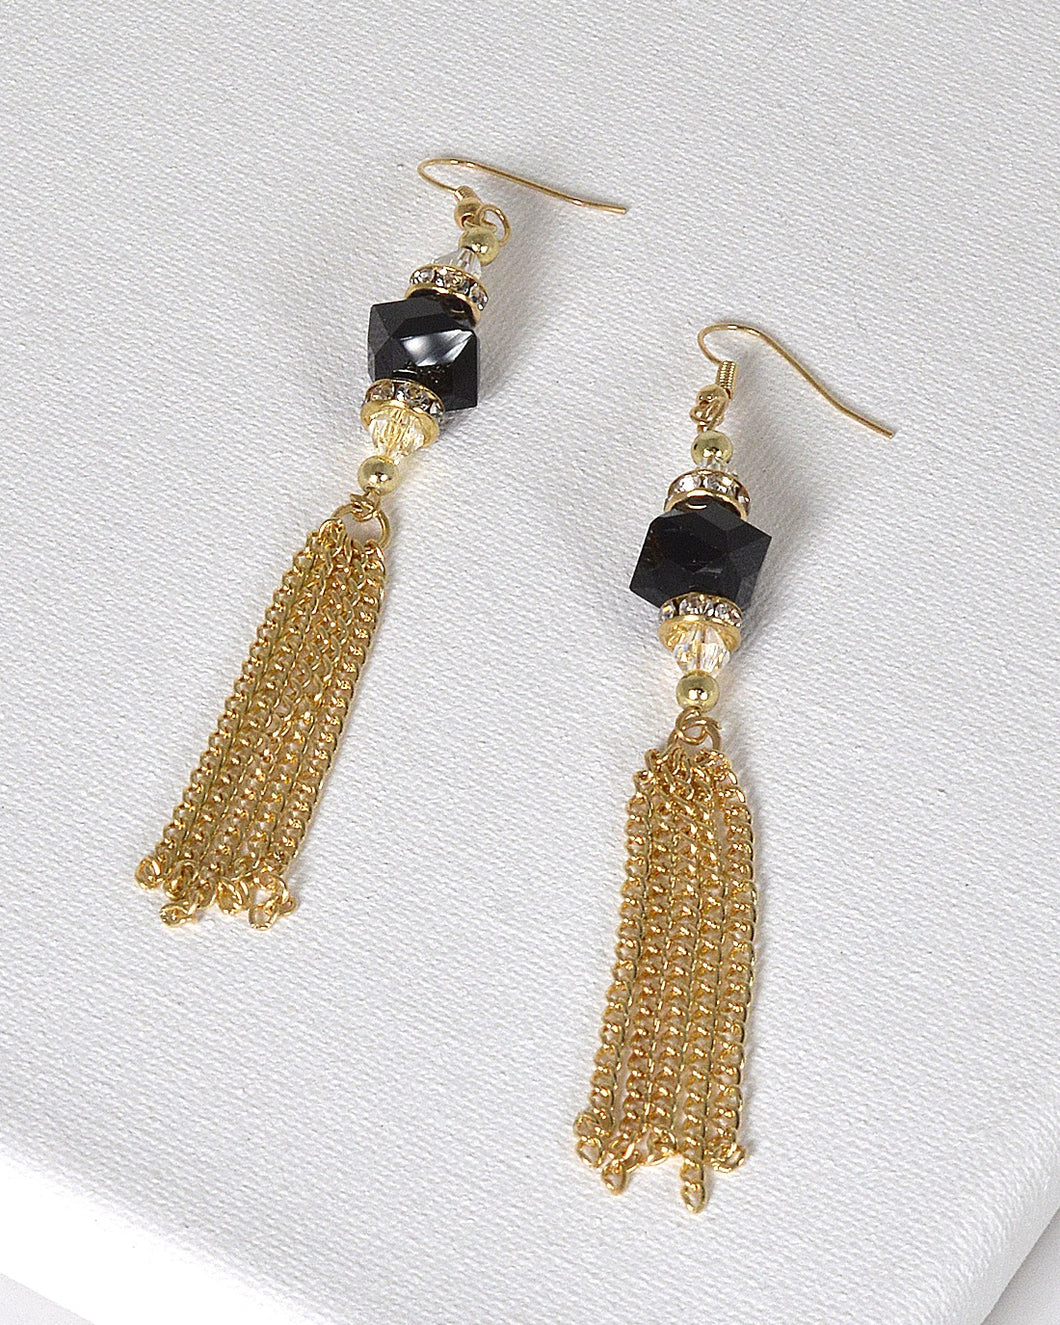 Tassel Style Crystal and Rhinestone Studded Drop Earrings